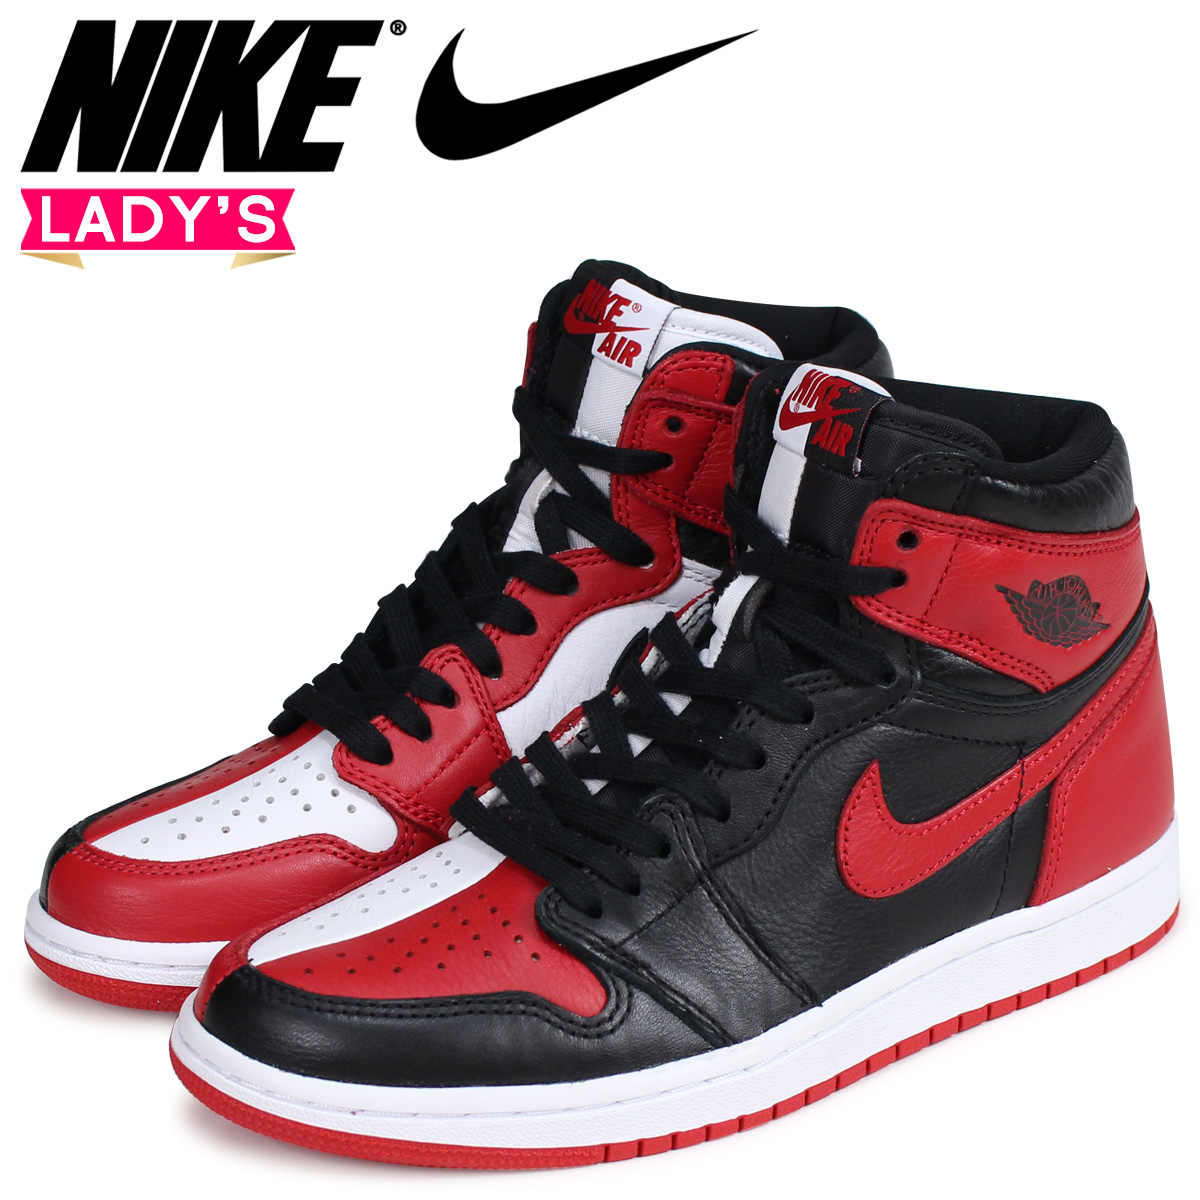 50% off recognized brands crazy price NIKE Nike Air Jordan 1 nostalgic Haile Dis sneakers AIR JORDAN 1 RETRO HIGH  OG HOMAGE TO HOME 861,428-061 red red